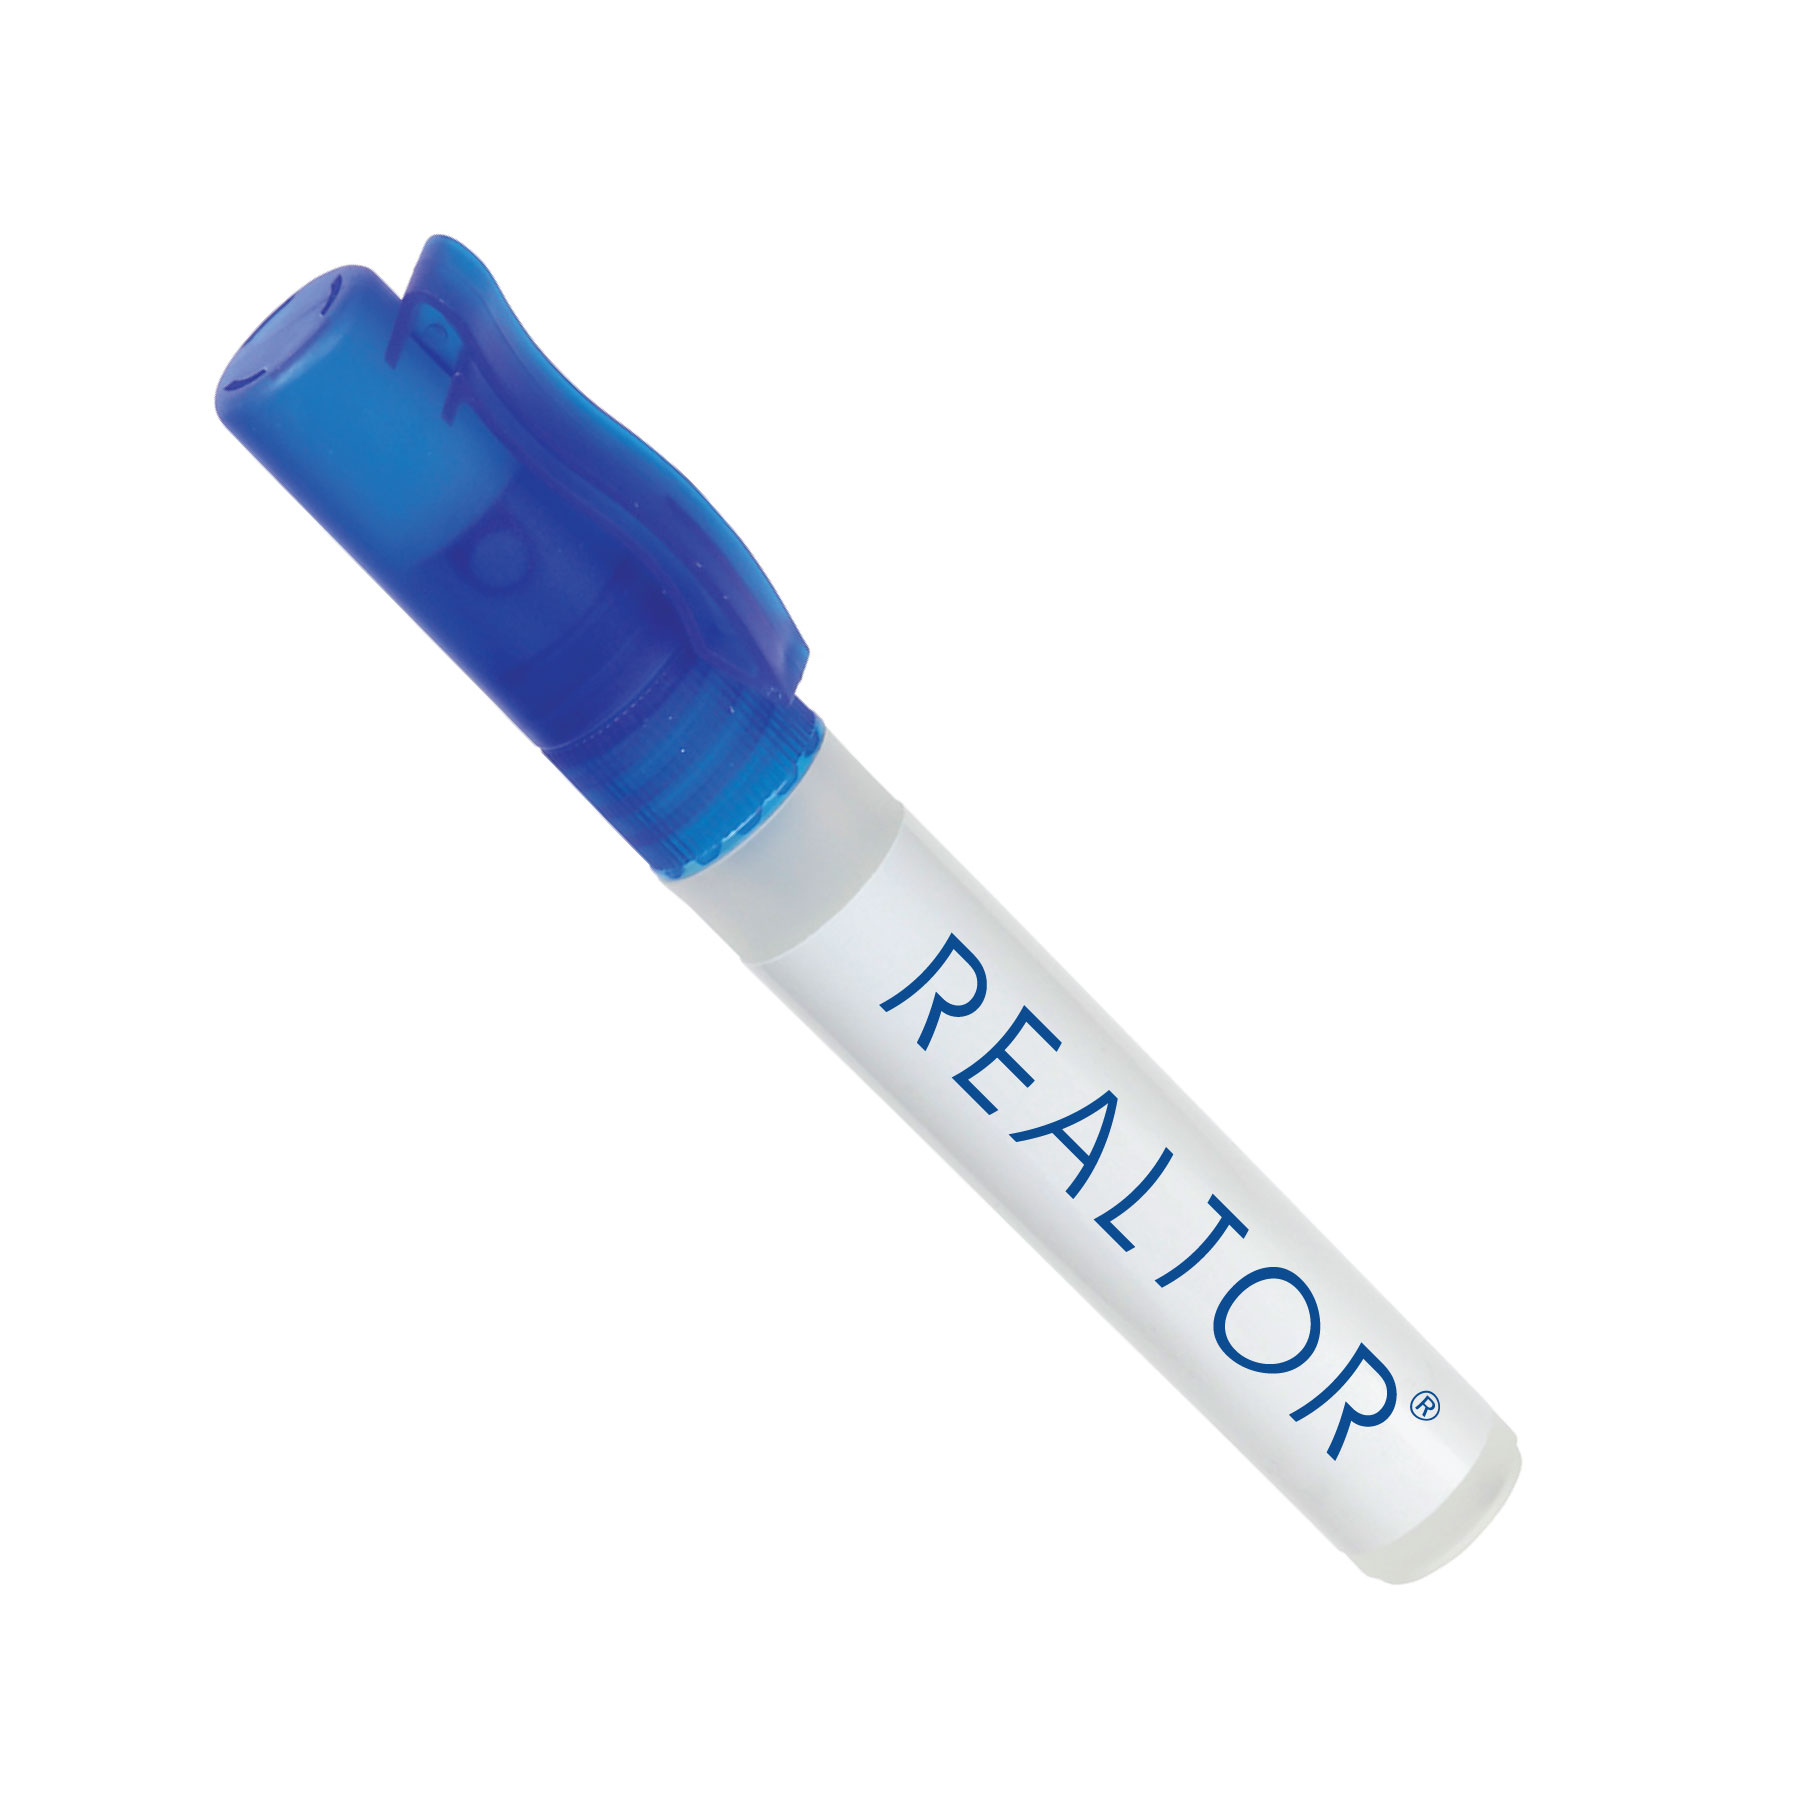 Spray Pen Sanitizer COVID,COVID-19,SARS,Virus,Viruses,Coughs,Safety,Sanis,Wipes,Cleaners,Antibacterials,Pens,Sprays